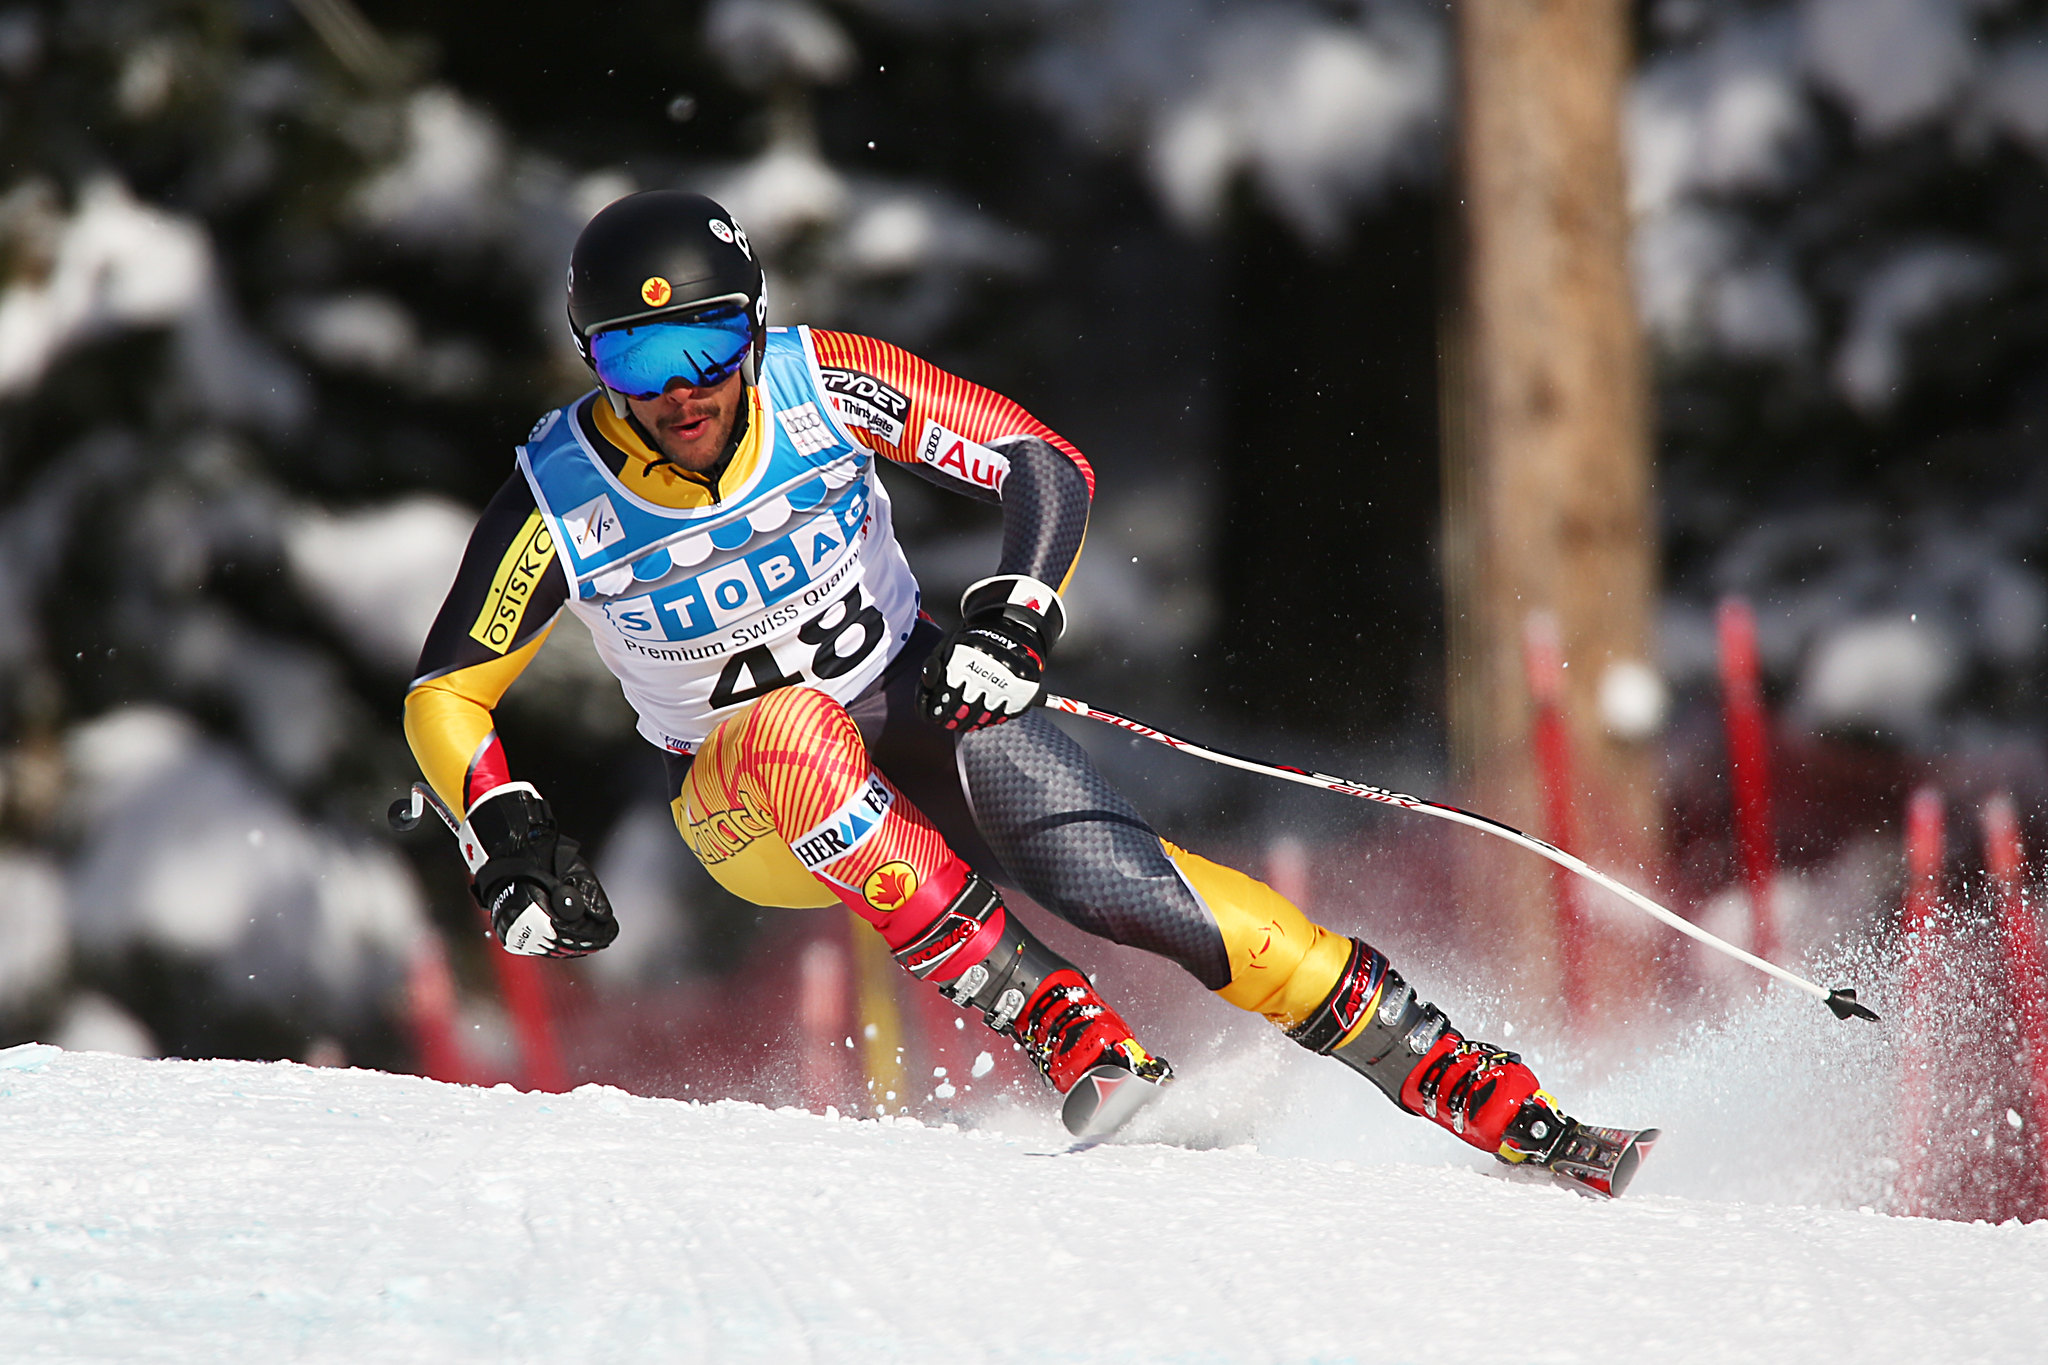 Conrad Pridy during the second downhill training run in Lake Louise (Nov. 2012)